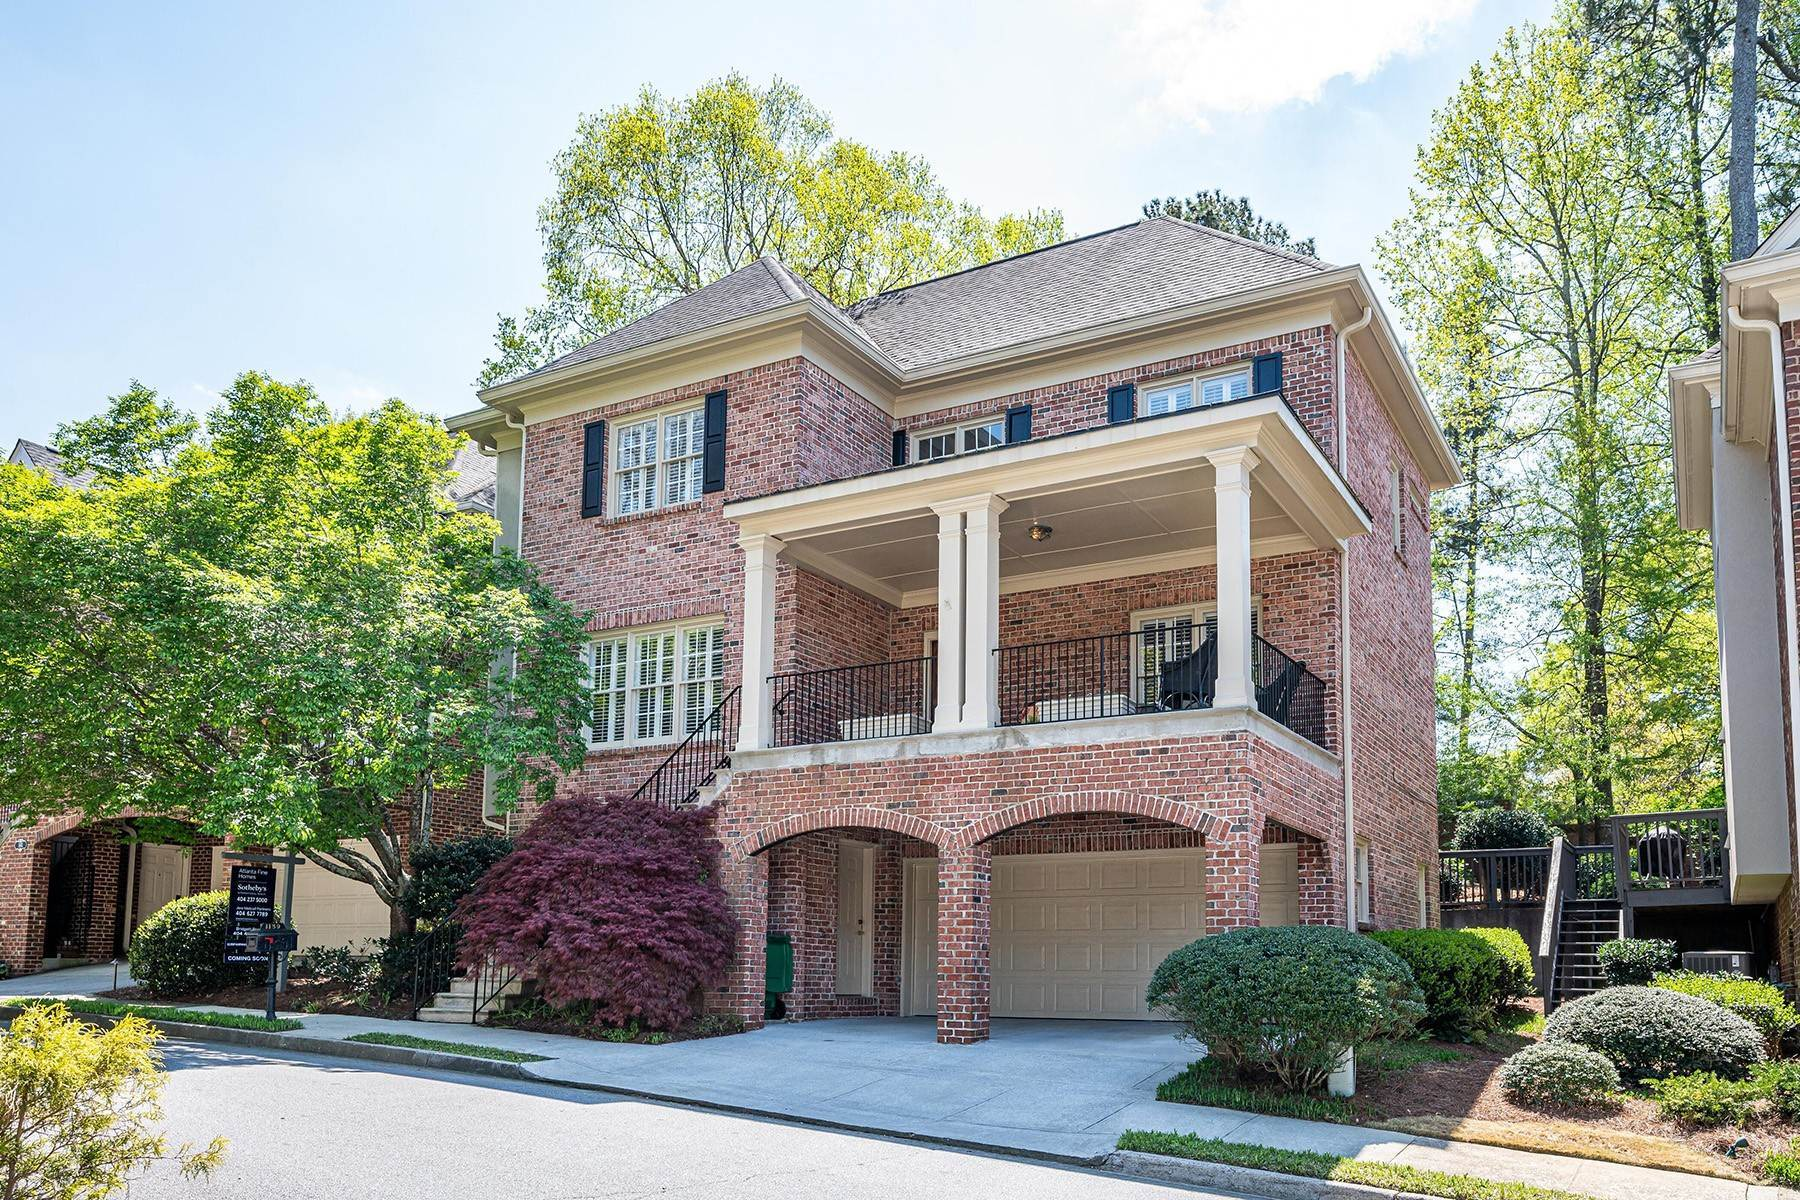 Single Family Homes for Sale at Fresh and Spacious 3 Level Home in a Quiet Neighborhood 1139 Fairway Gardens NE Brookhaven, Georgia 30319 United States